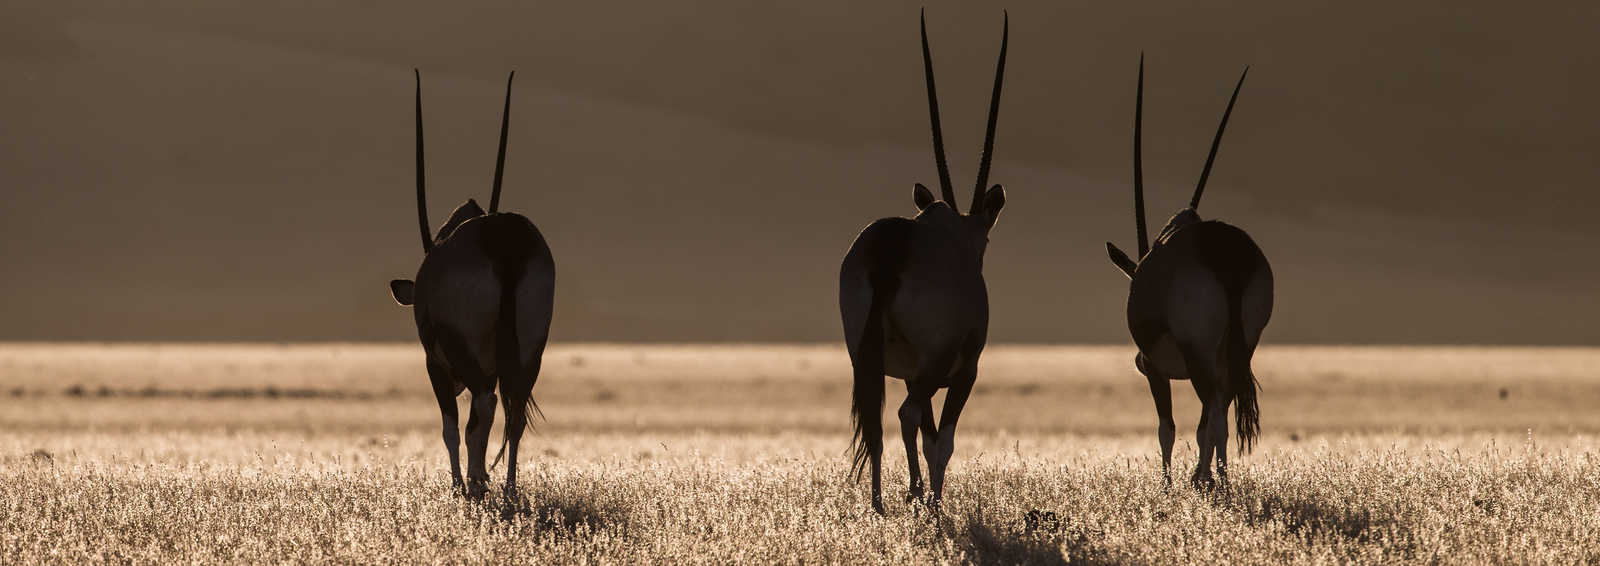 Namibian wildlife, Namibia - Copywrite Paul Goldstein